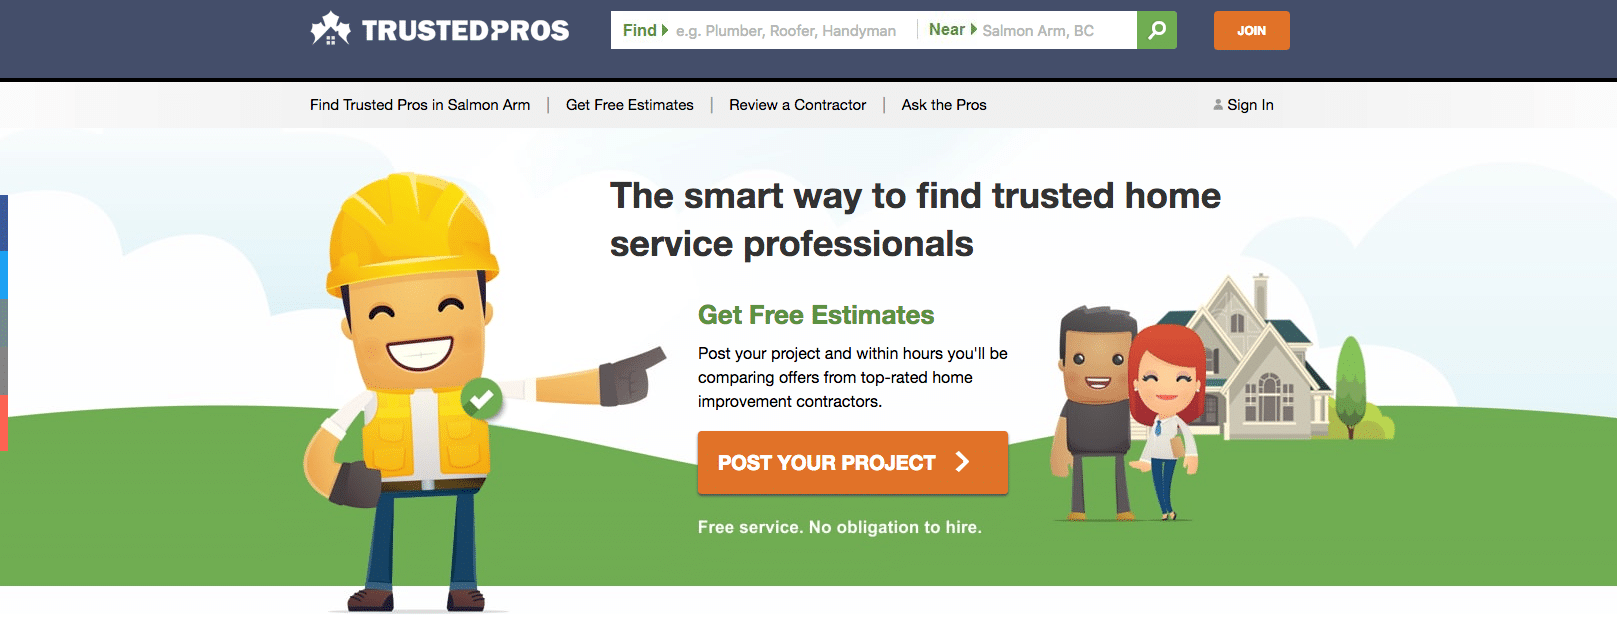 trustedpros-business-listing